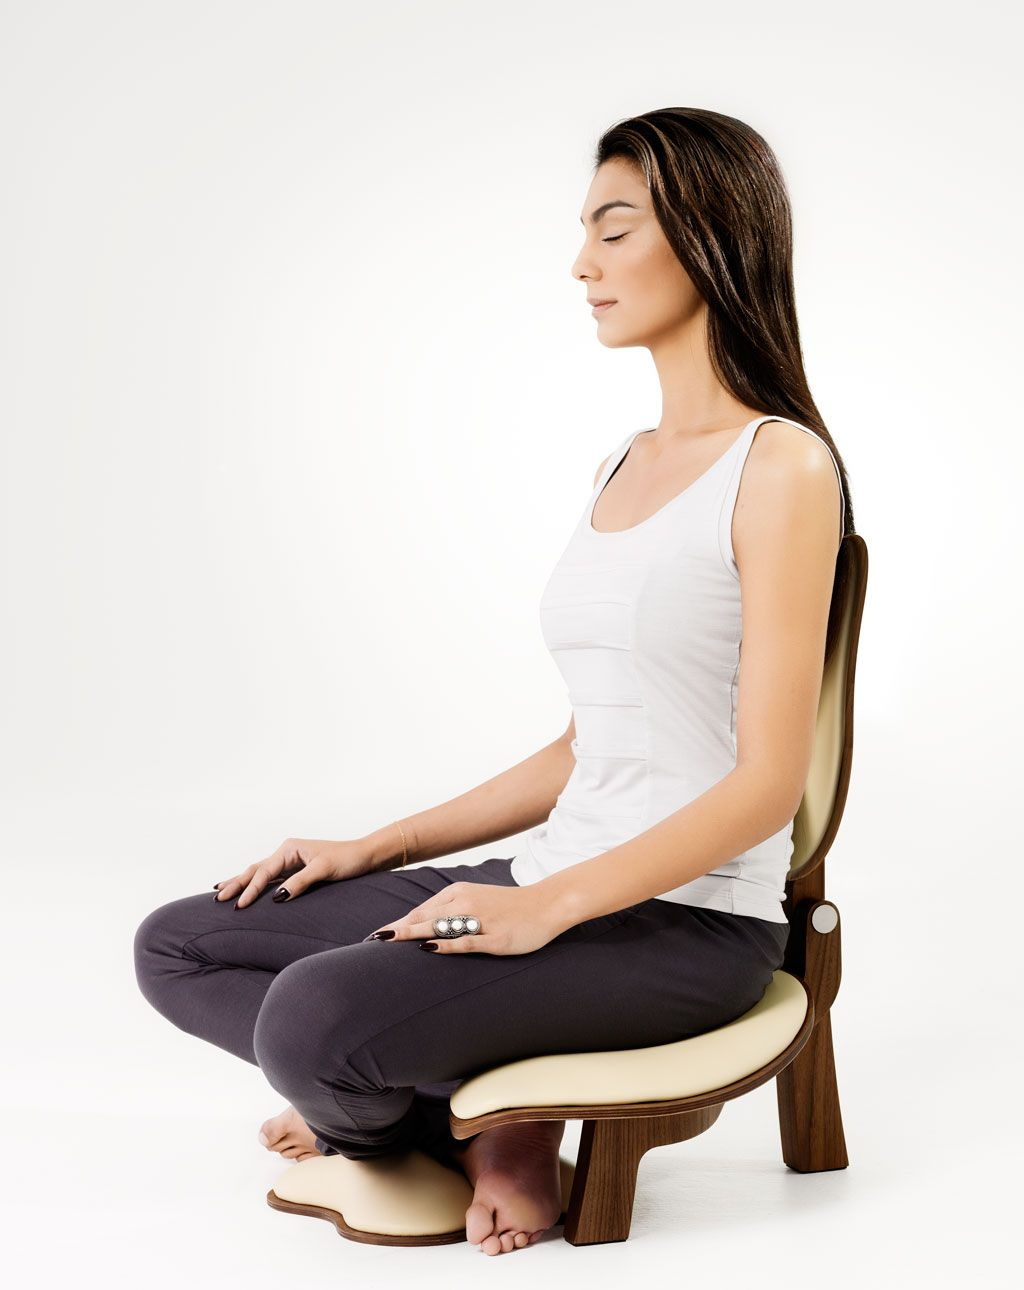 Basho Chair support perfect sitting posture and fort